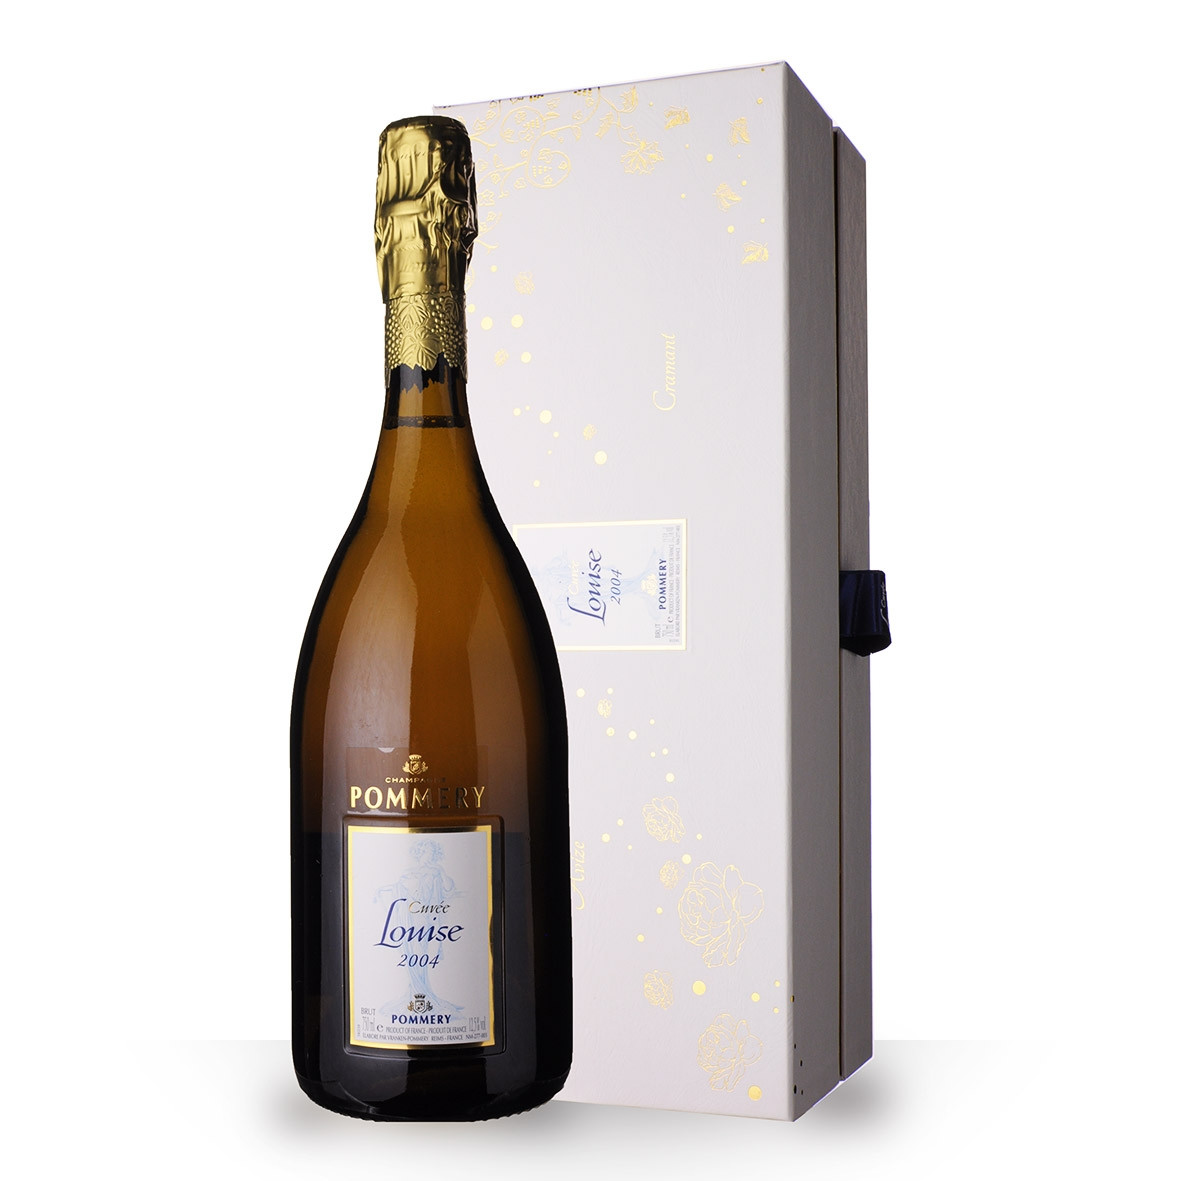 Champagne Pommery Cuvée Louise 2004 Brut 75cl Coffret www.odyssee-vins.com